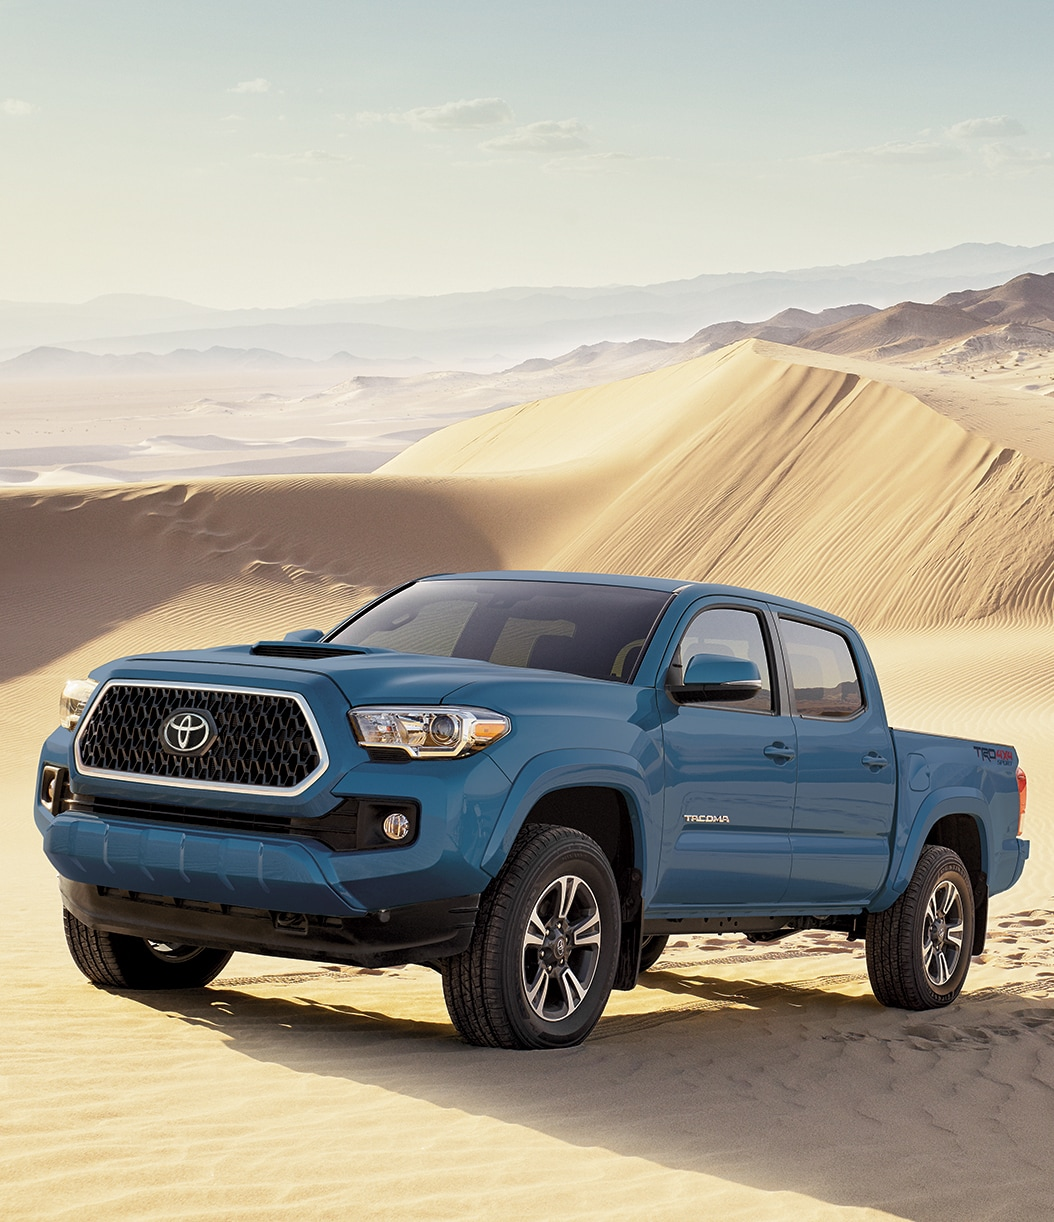 2019 Nissan Frontier: The 2019 Toyota Tacoma Vs. The 2019 Nissan Frontier